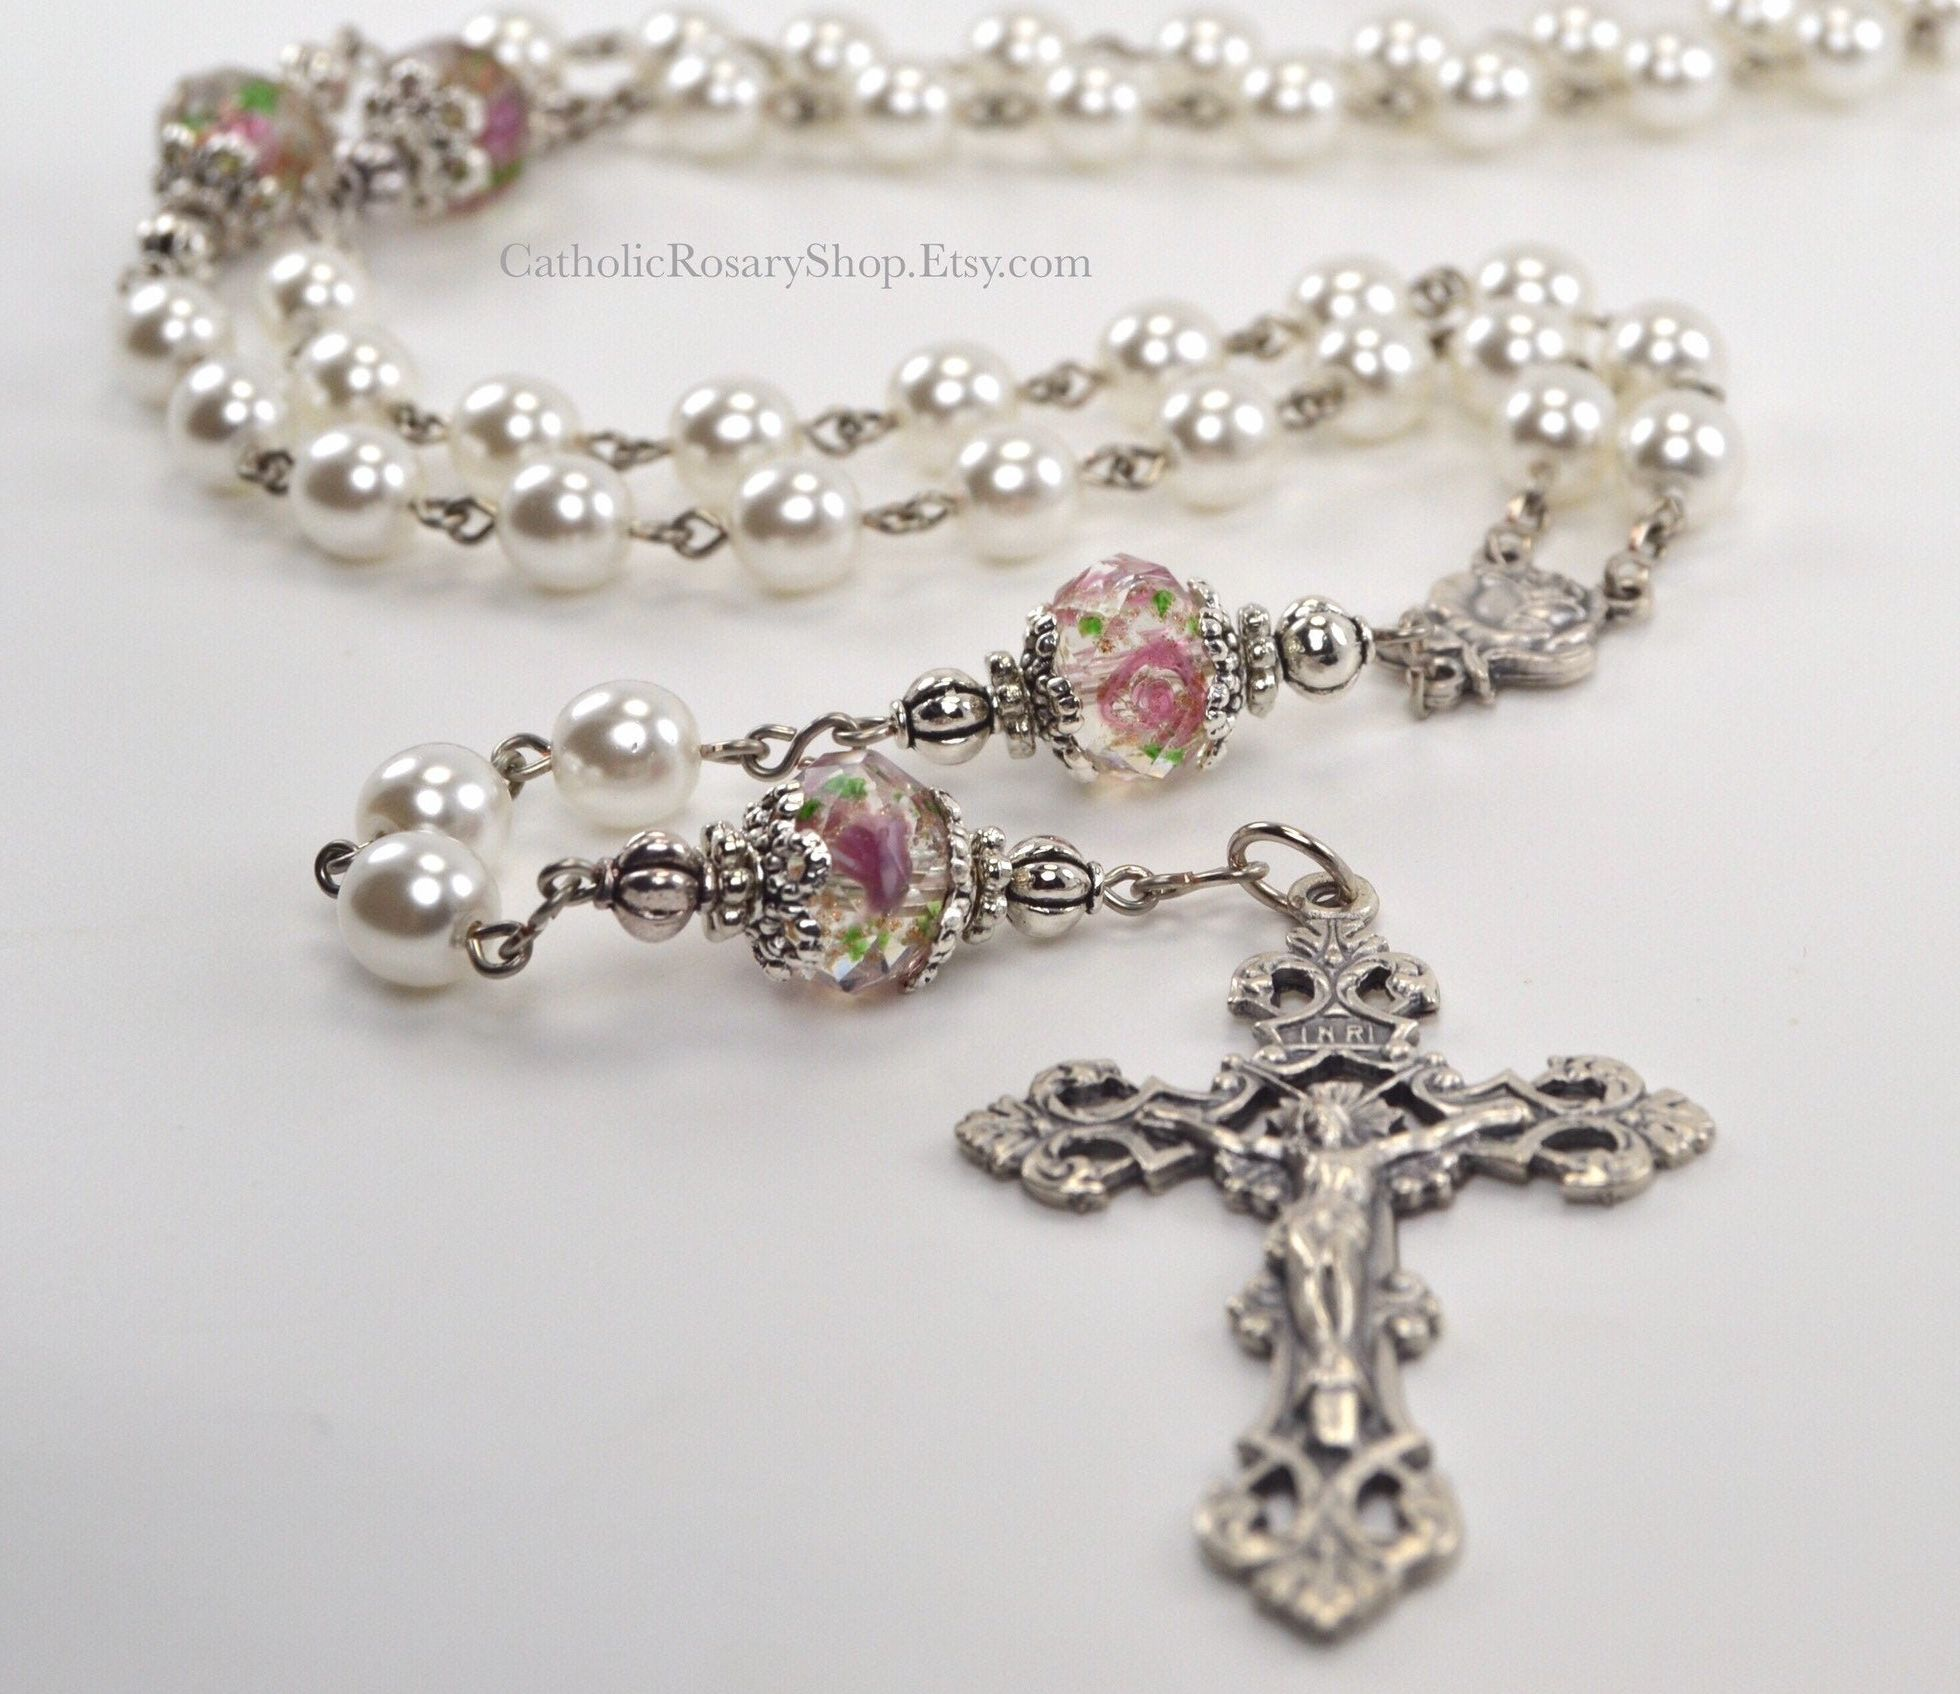 Catholic Rosary in Pink Floral with White Pearls